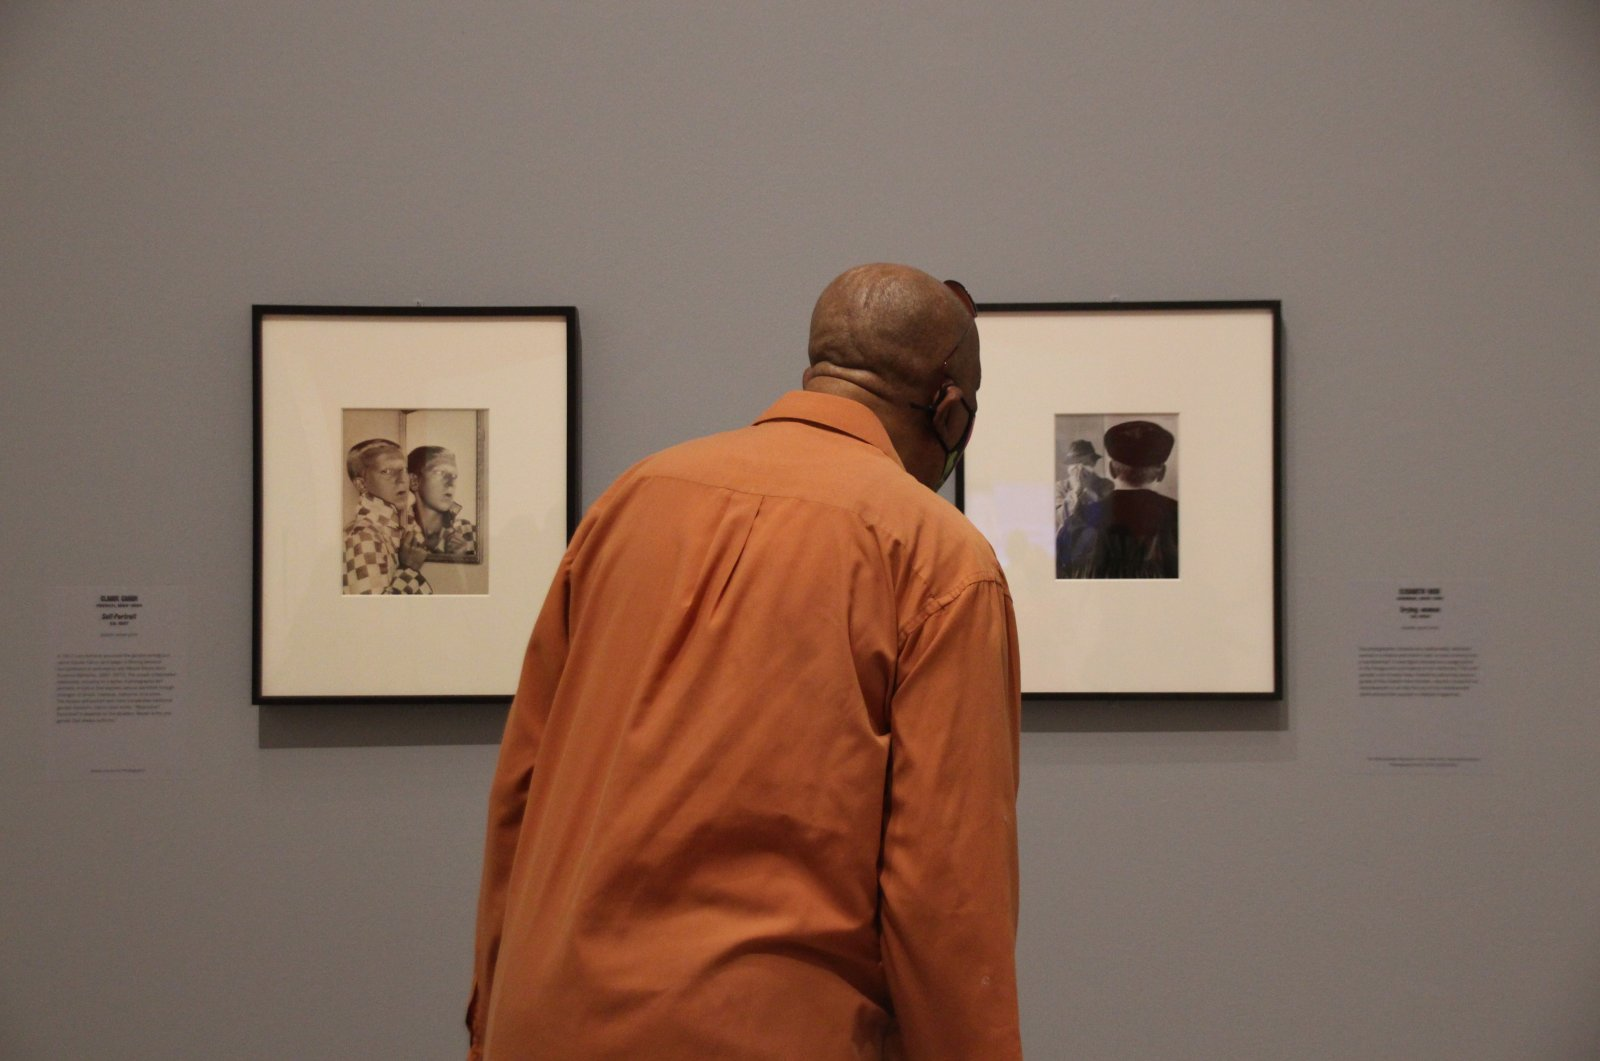 """A visitor stands in front of two exhibits, """"Self-portrait"""" by Claude Cahun (L) and """"Crying woman"""" by Elisabeth Hase, at the exhibition """"The New Woman Behind The Camera"""" at New York's Met Museum. (DPA Photo)"""